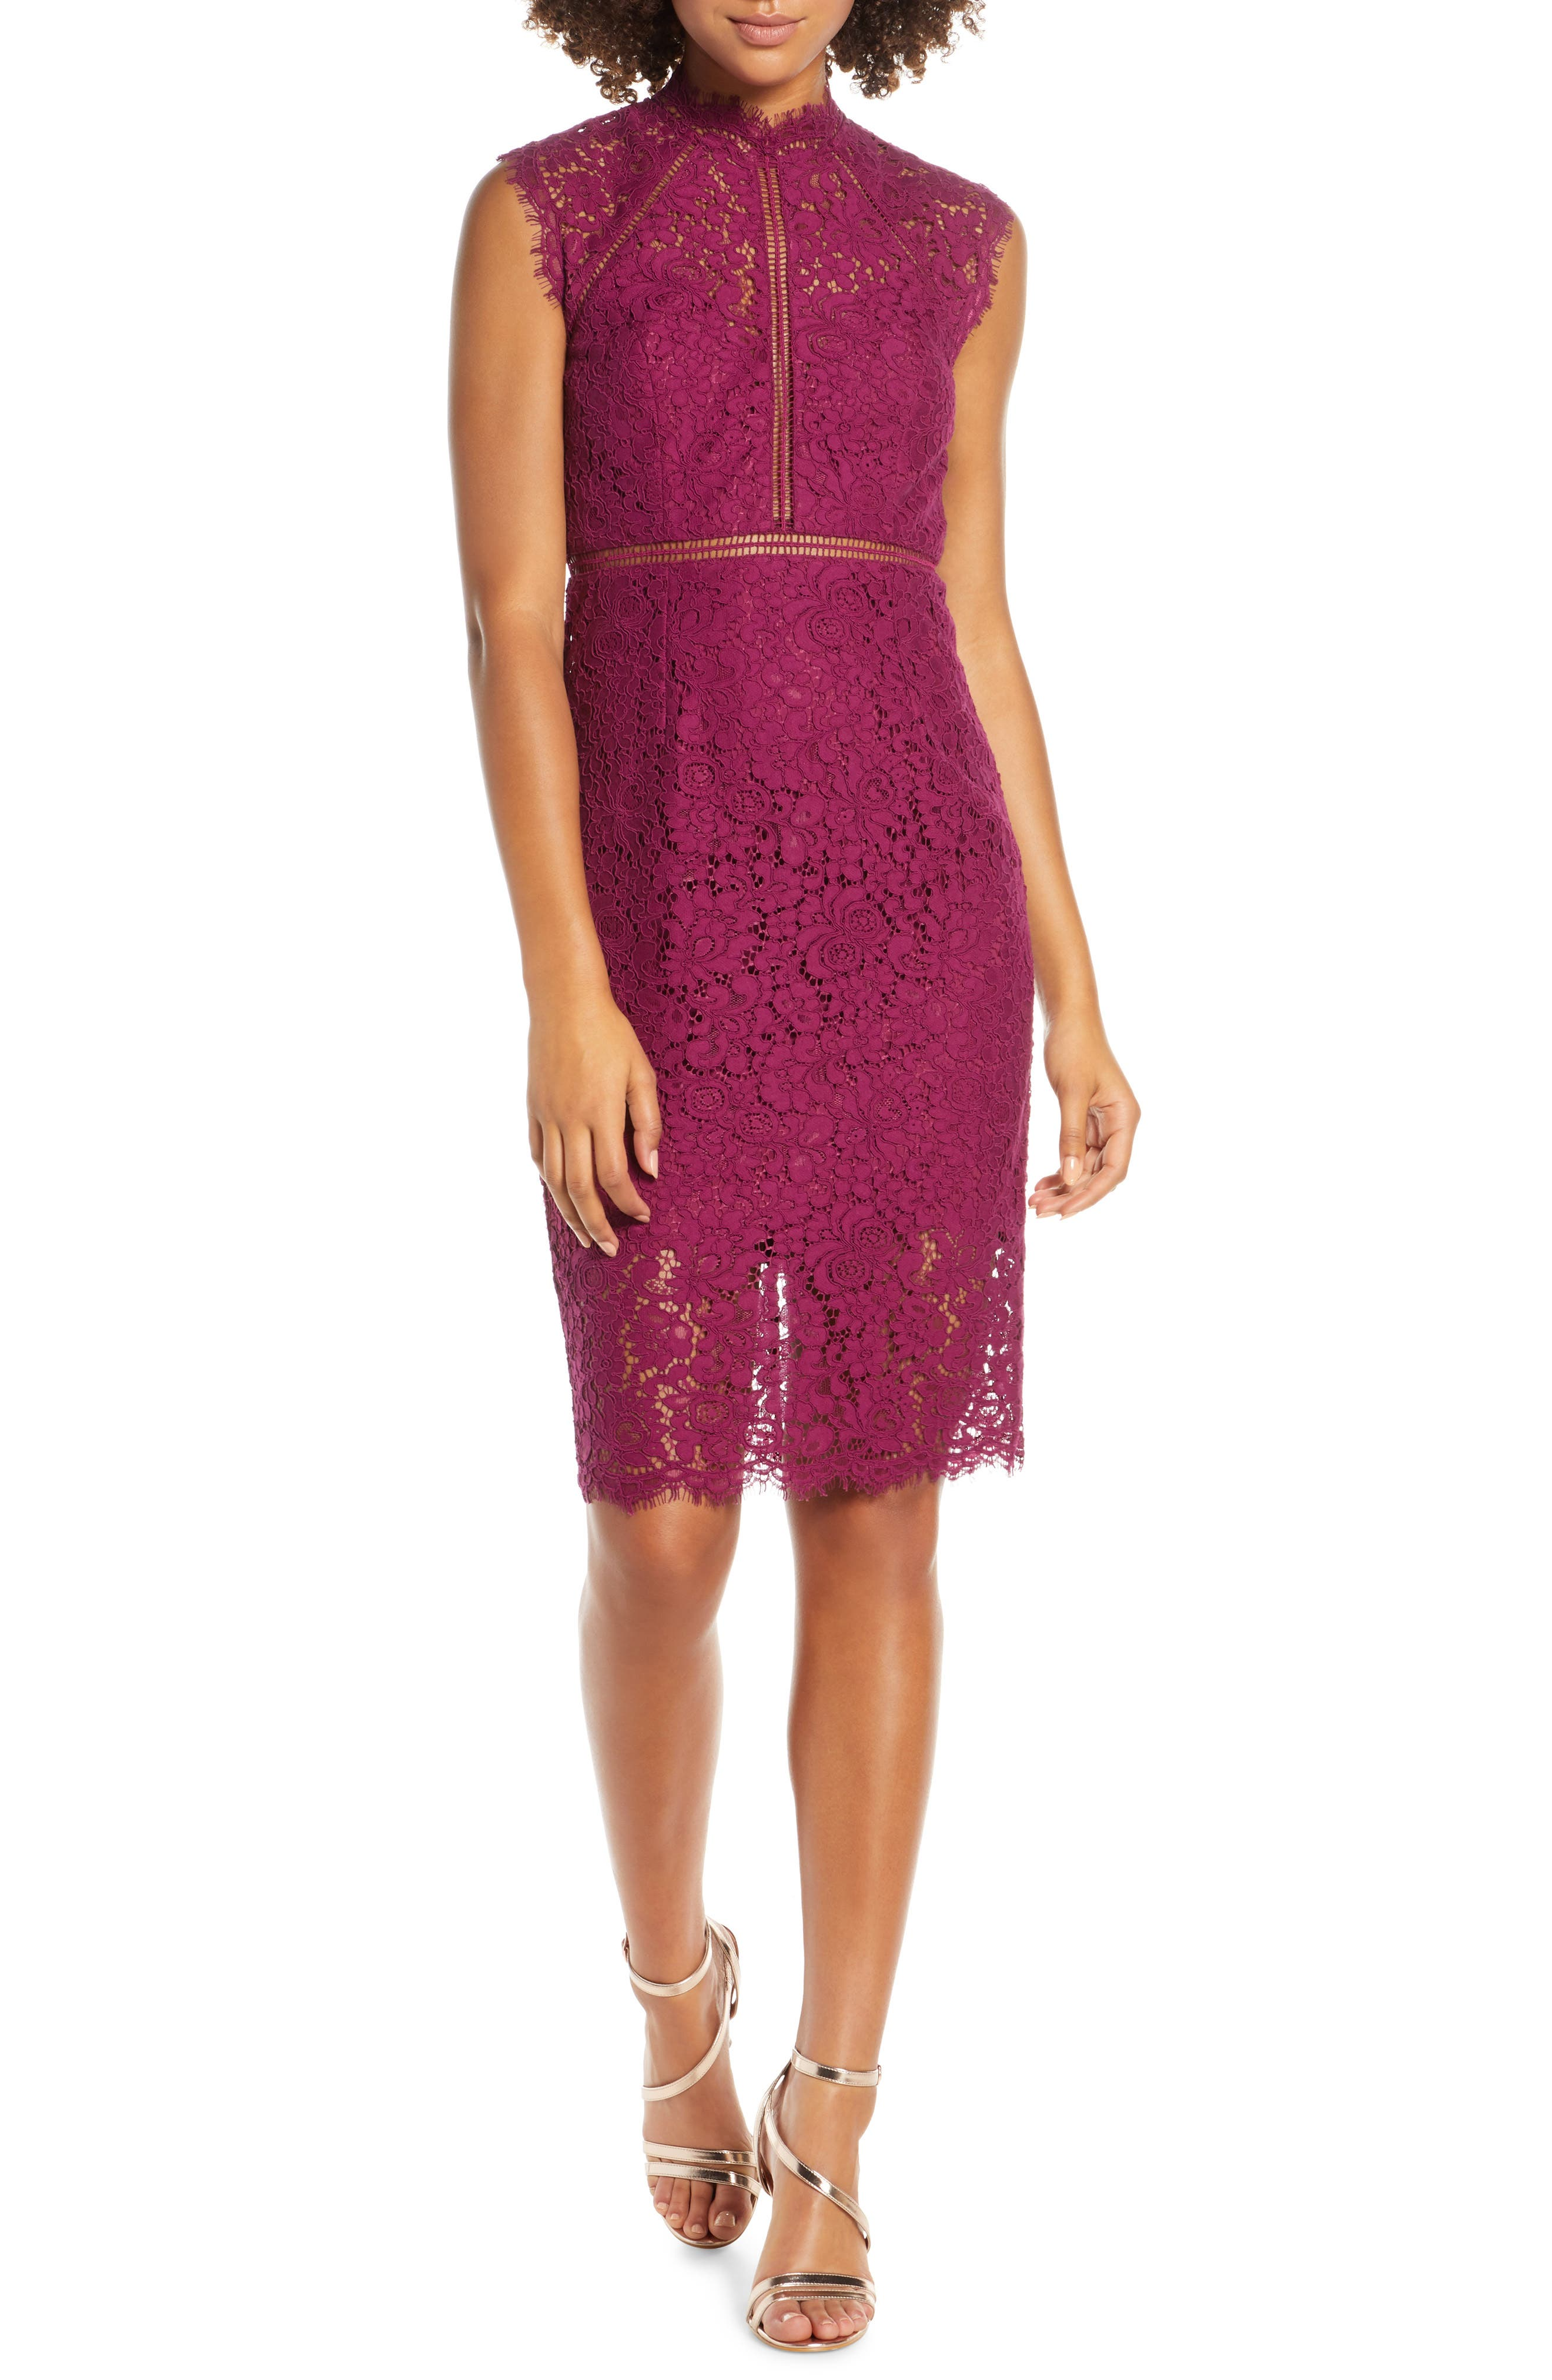 360c55fded Women's Cocktail & Party Dresses | Nordstrom